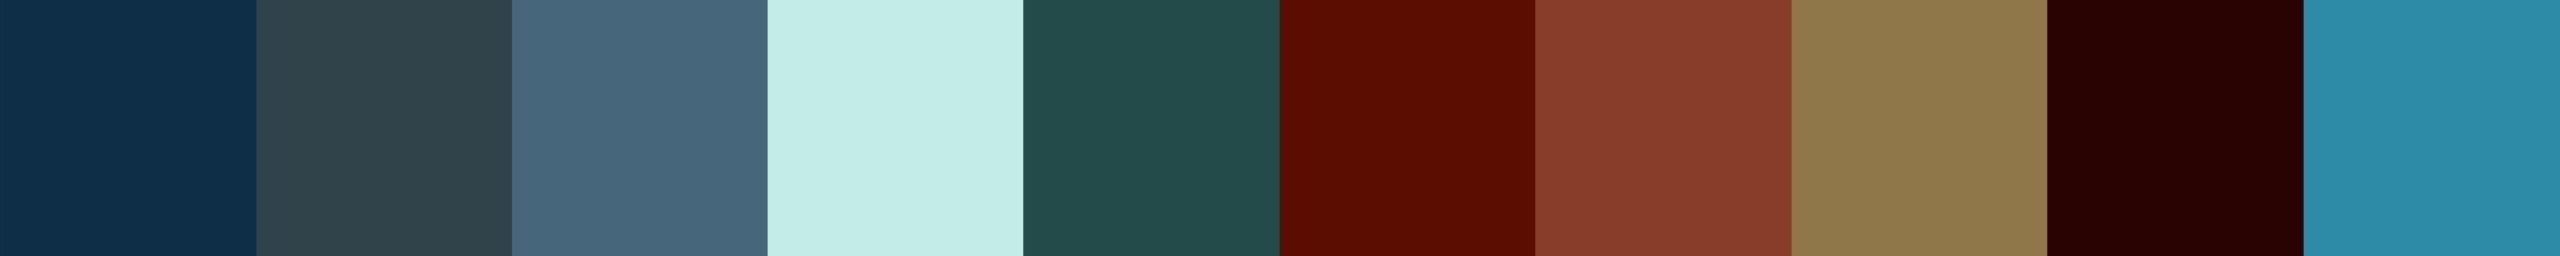 787 Centriala Color Palette